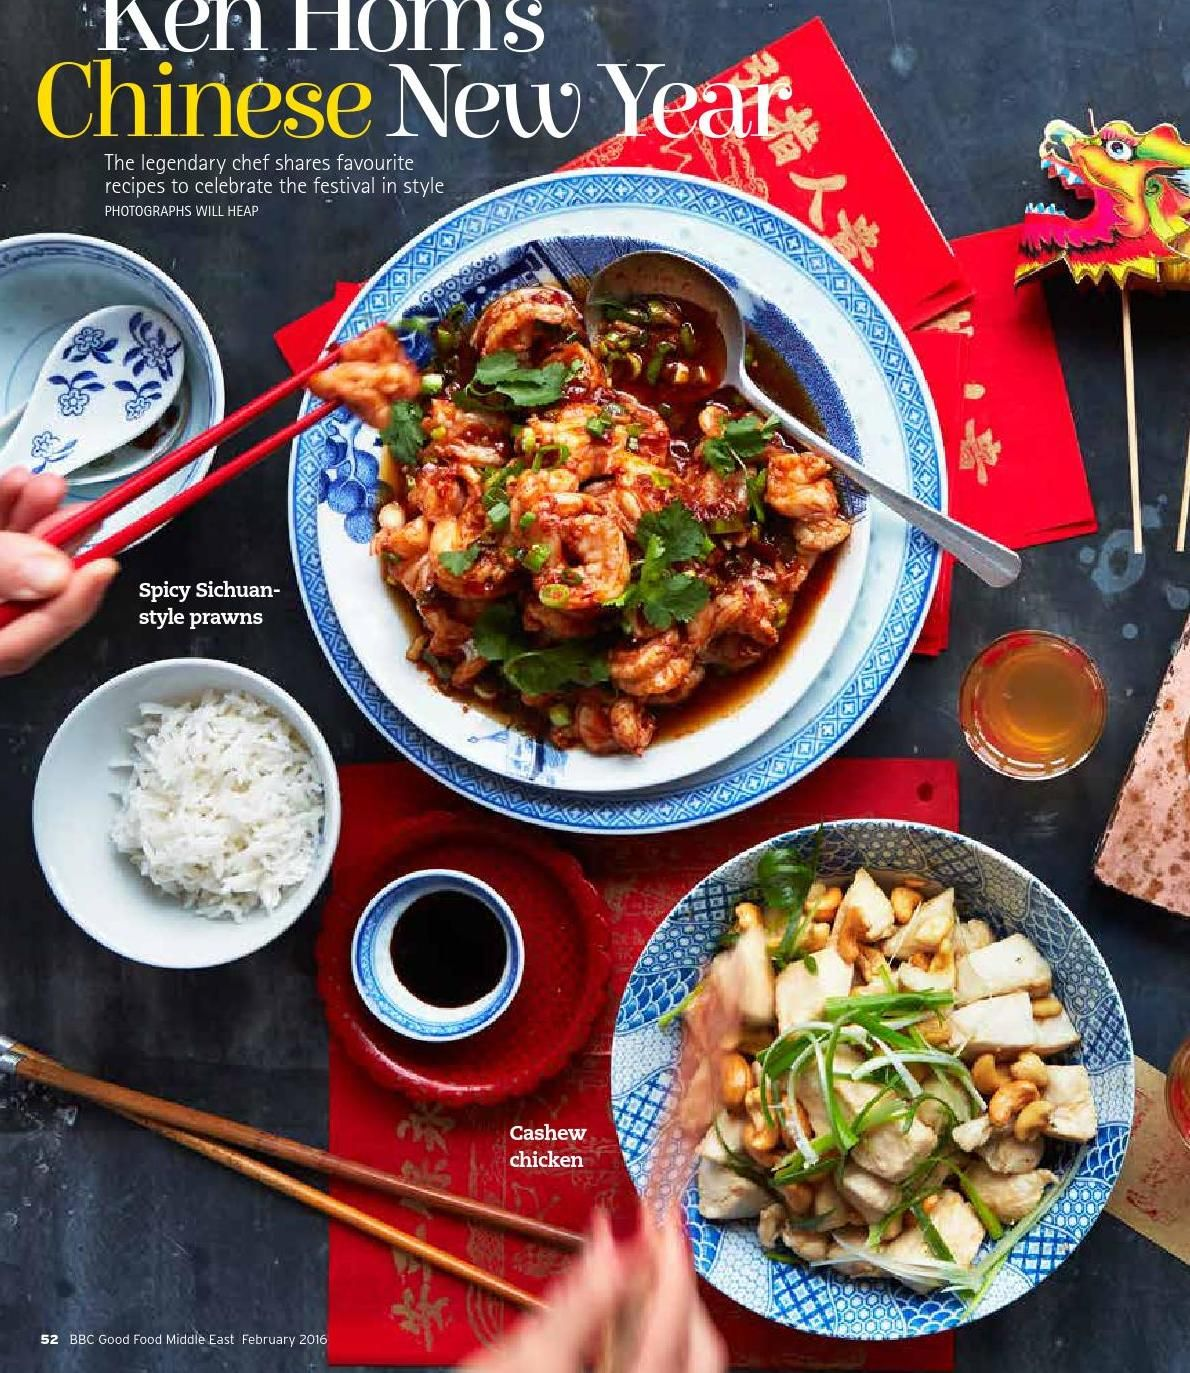 Bbc good food me 2016 february bbc japanese food and foods spicy sichuan style prawns and cashew chicken food recipes forumfinder Images